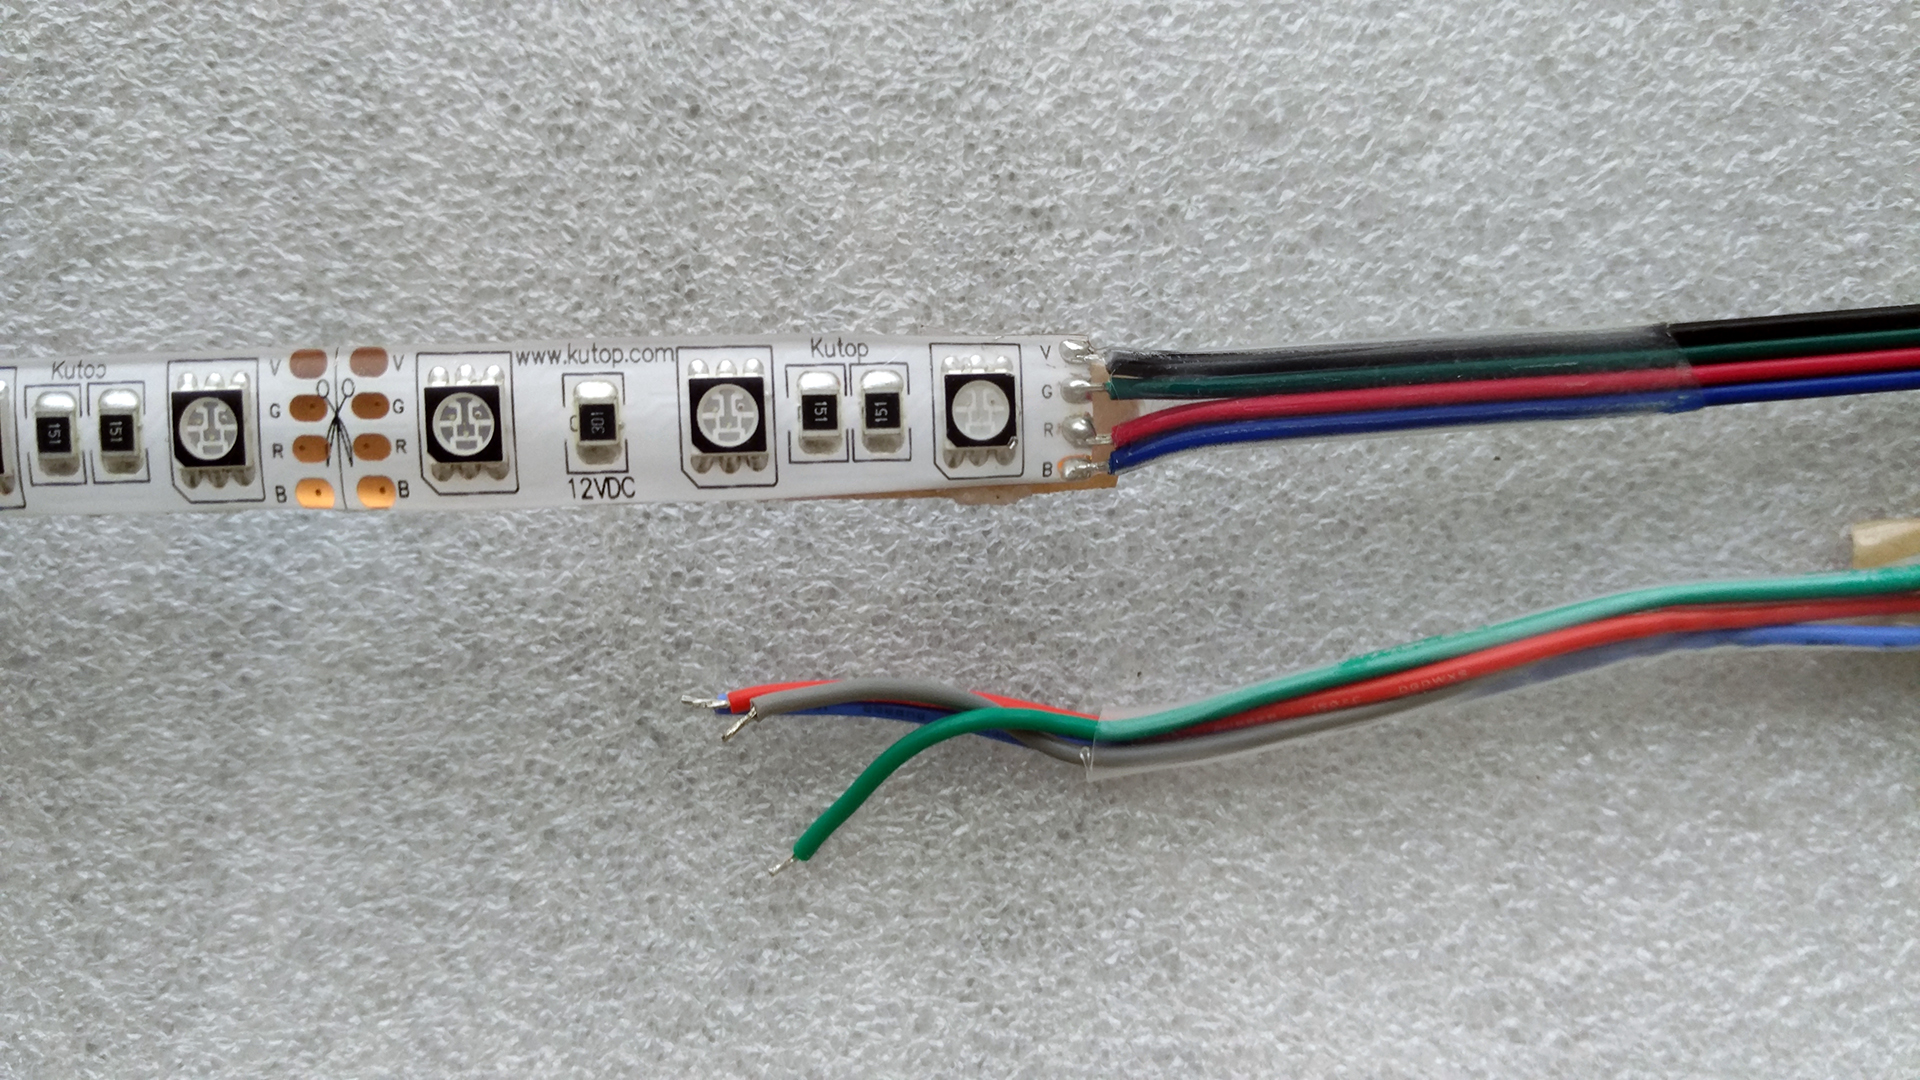 hight resolution of kutop high quality rgb 5050 led strip output wires